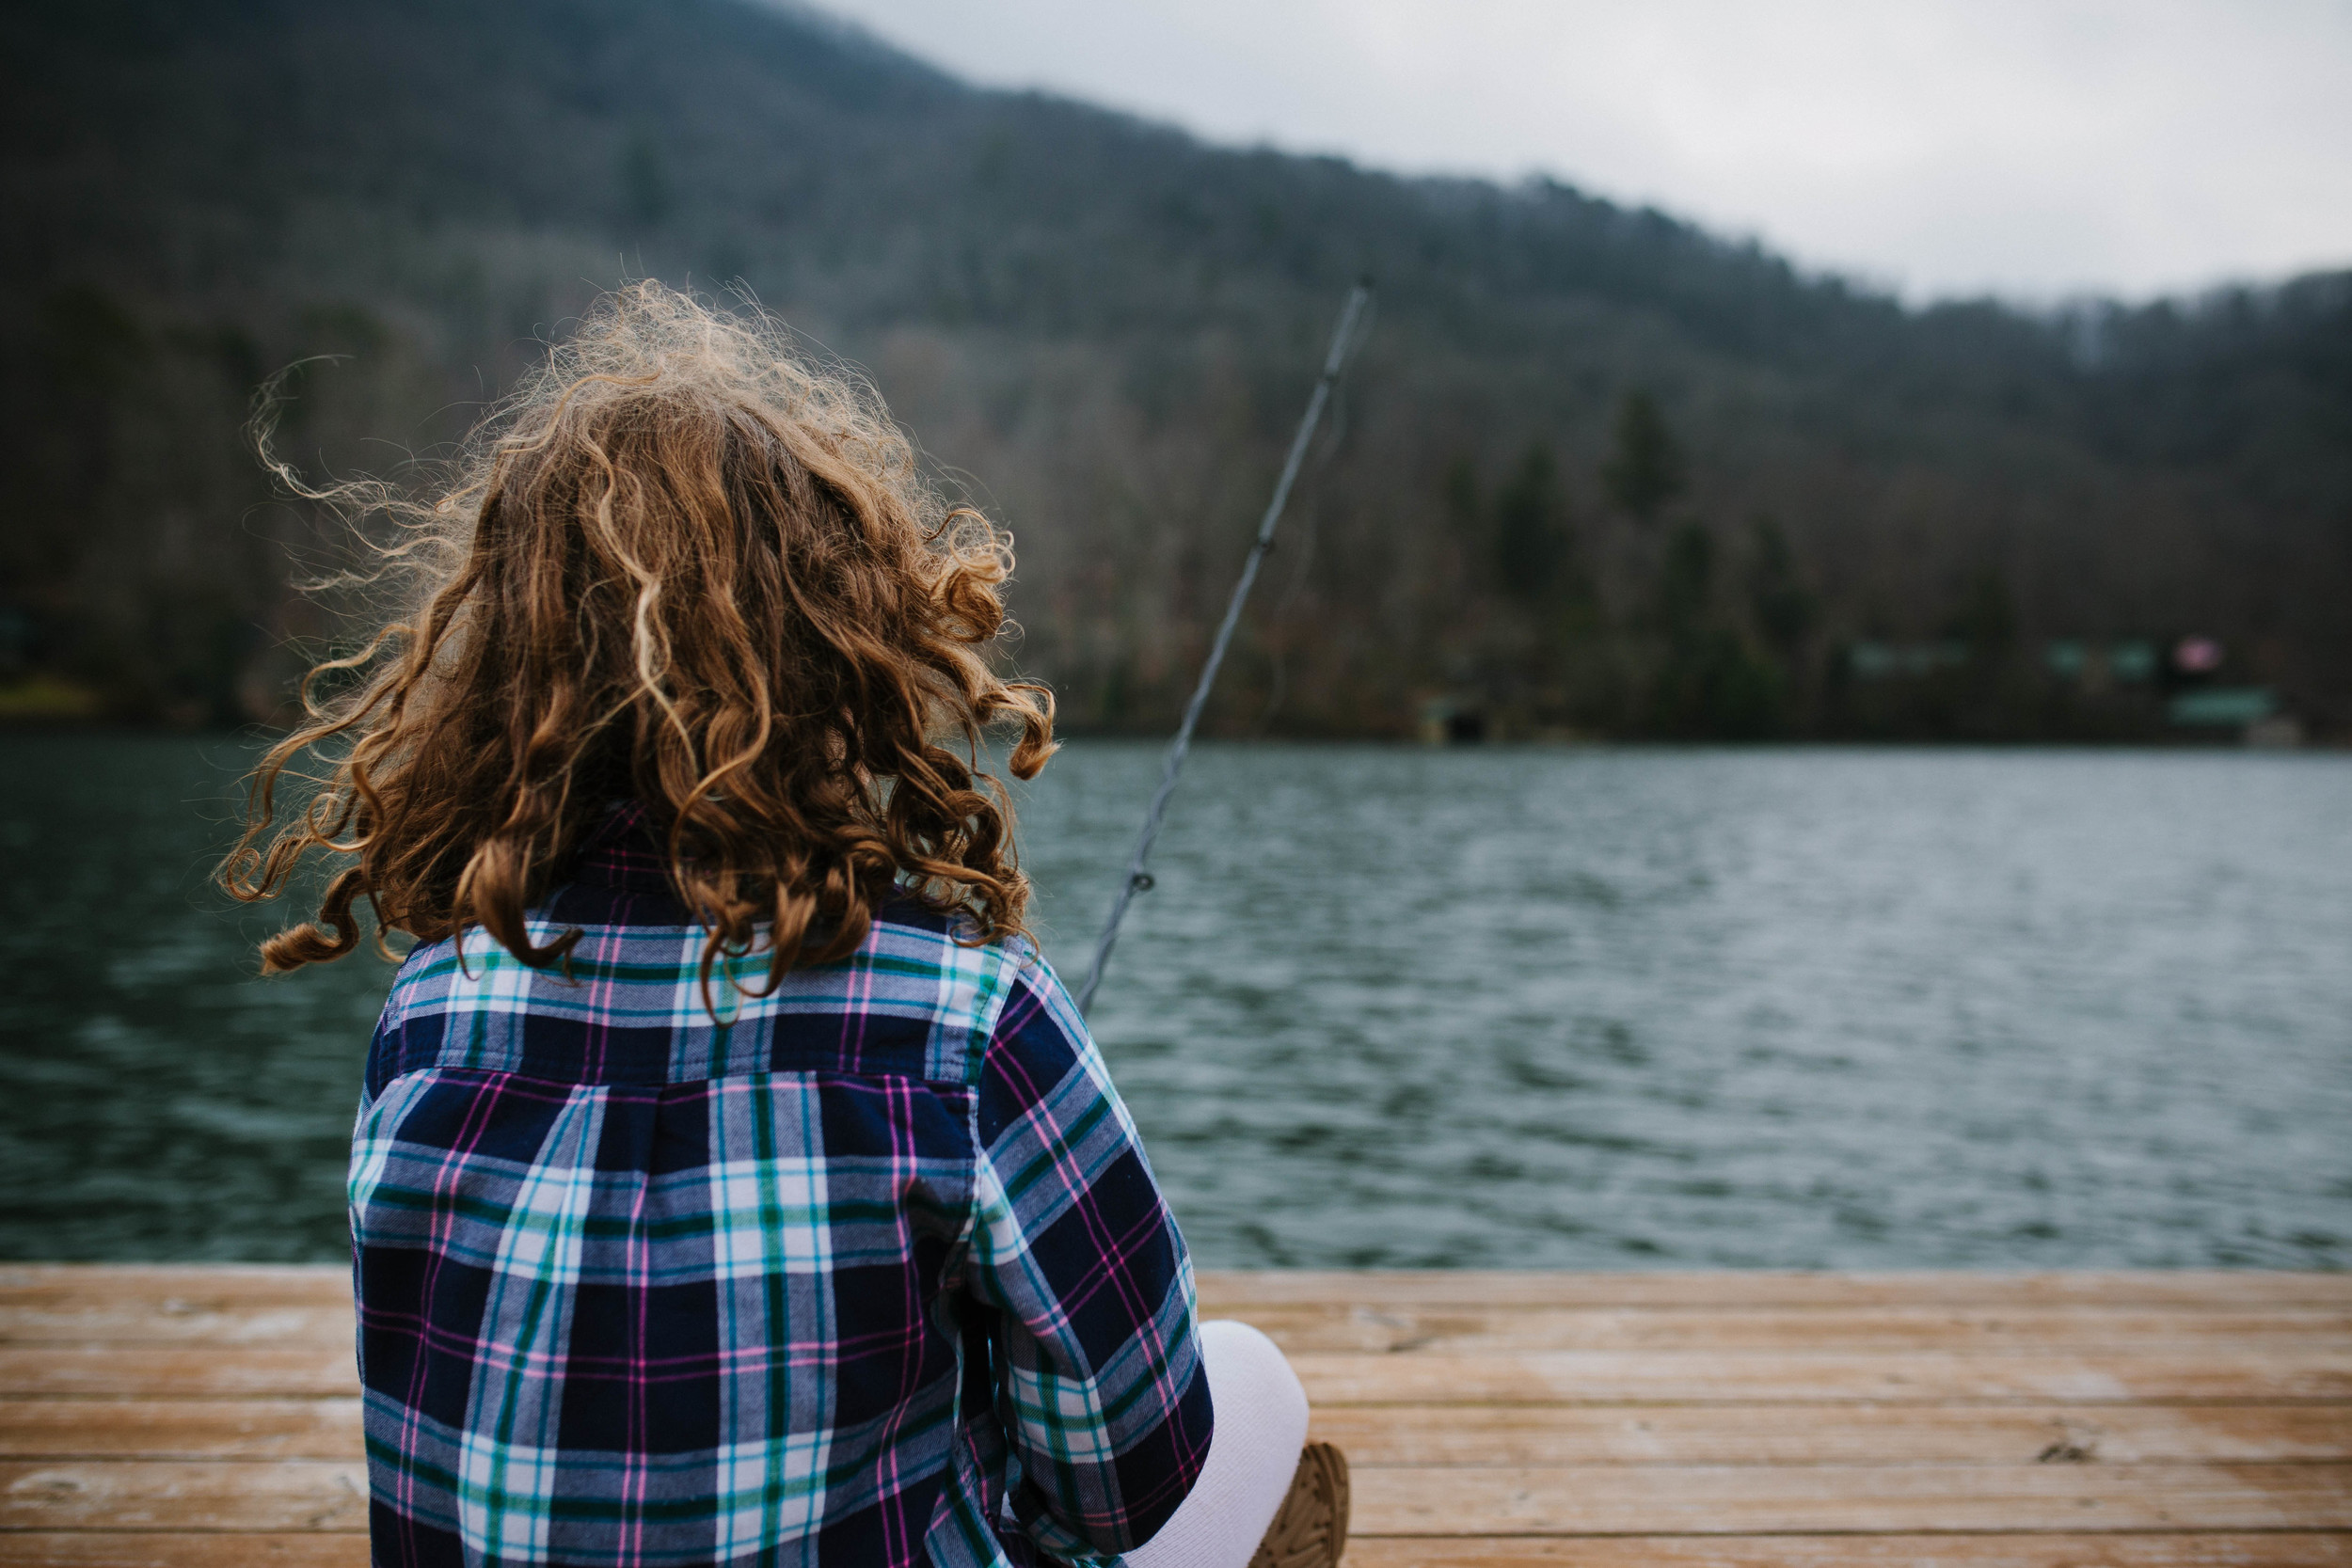 Close up image of girl fishing from behind